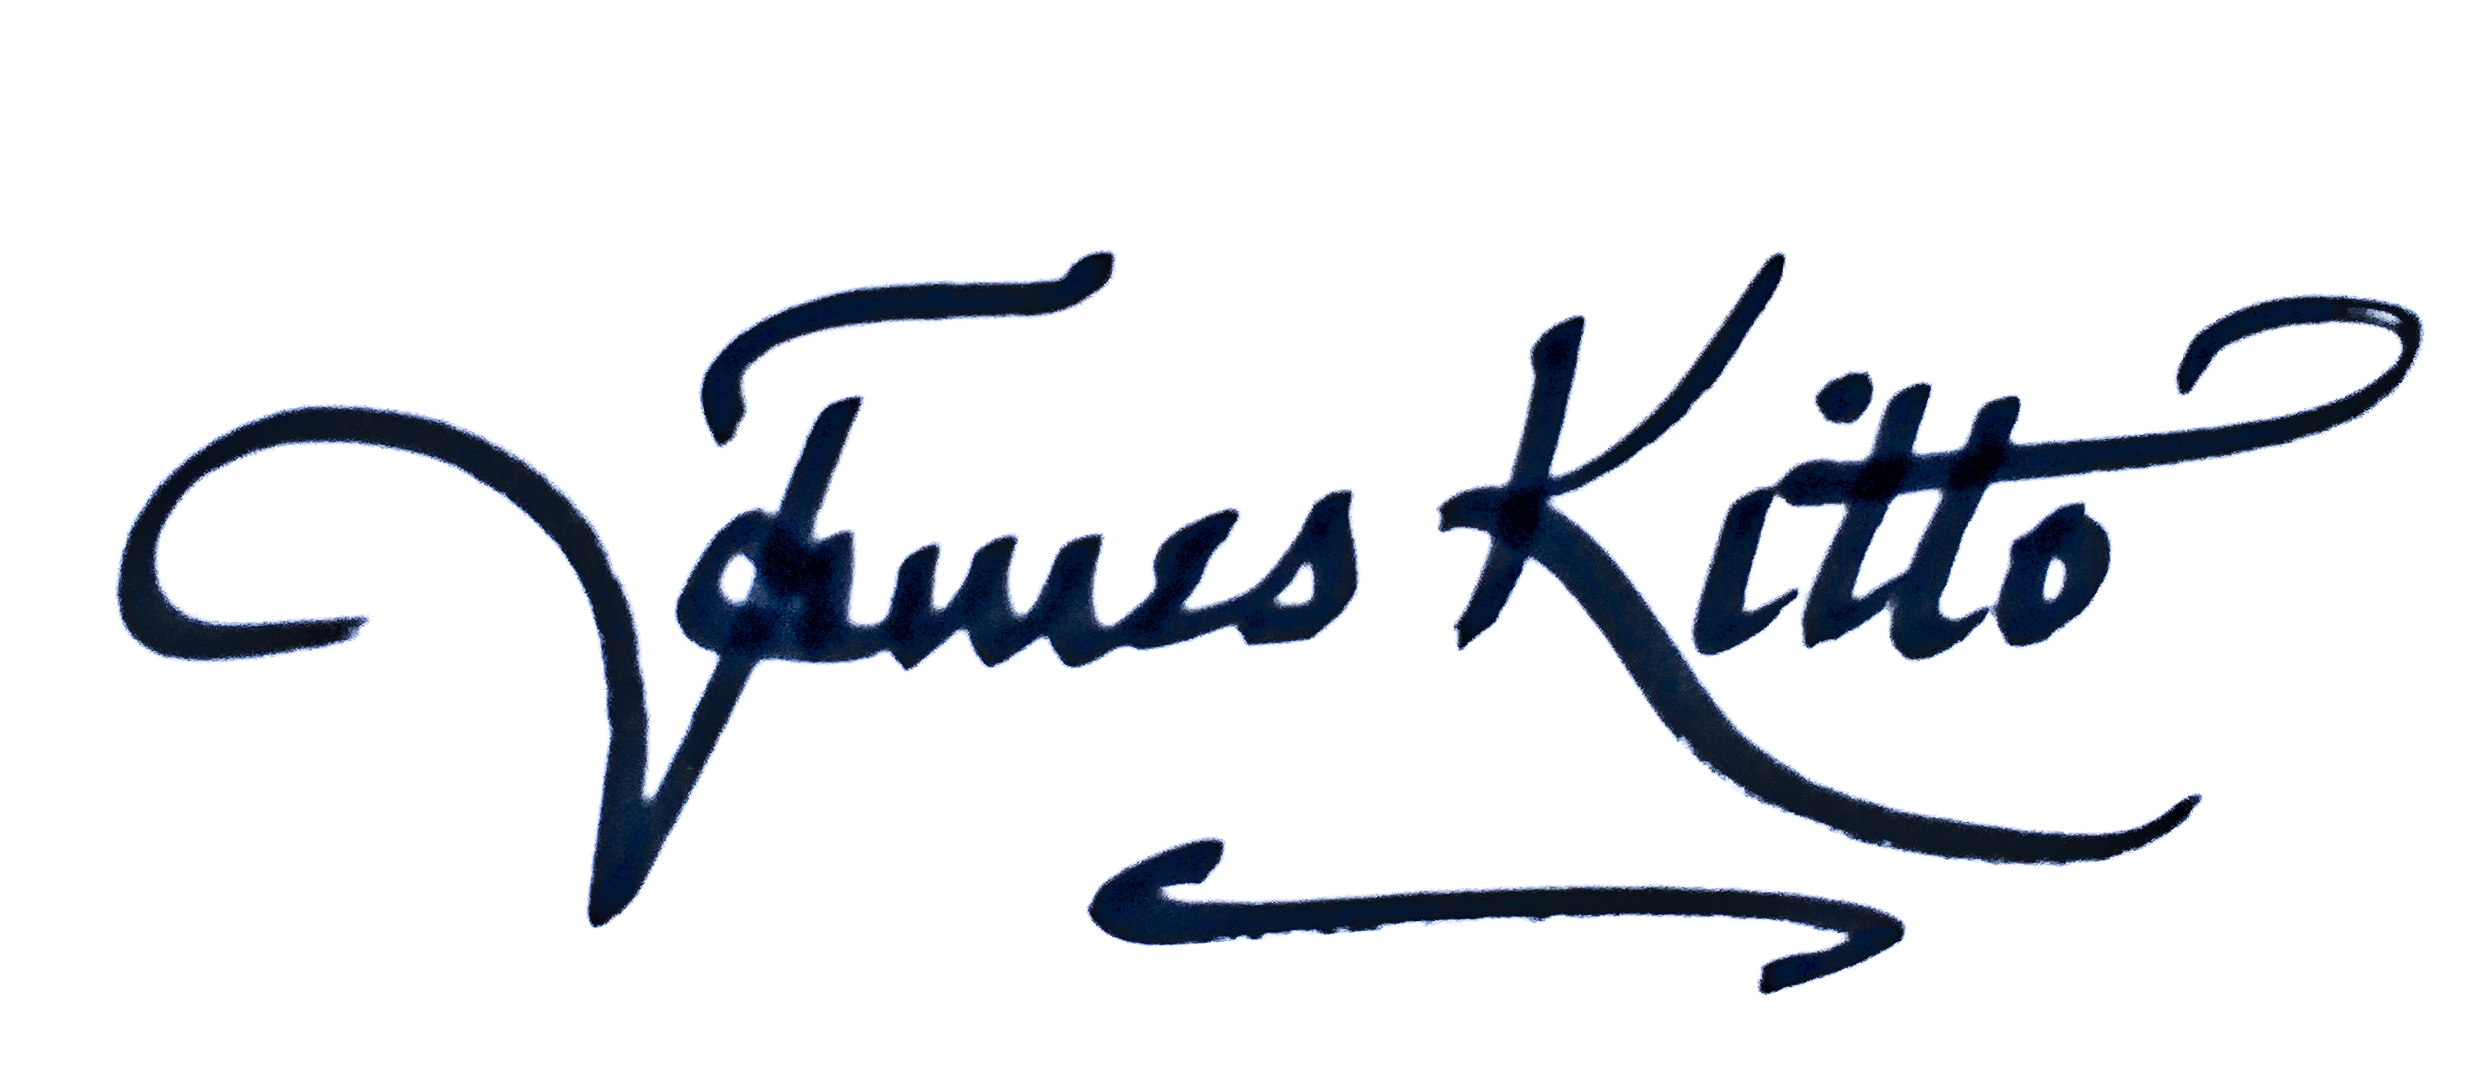 James Kitto Signature